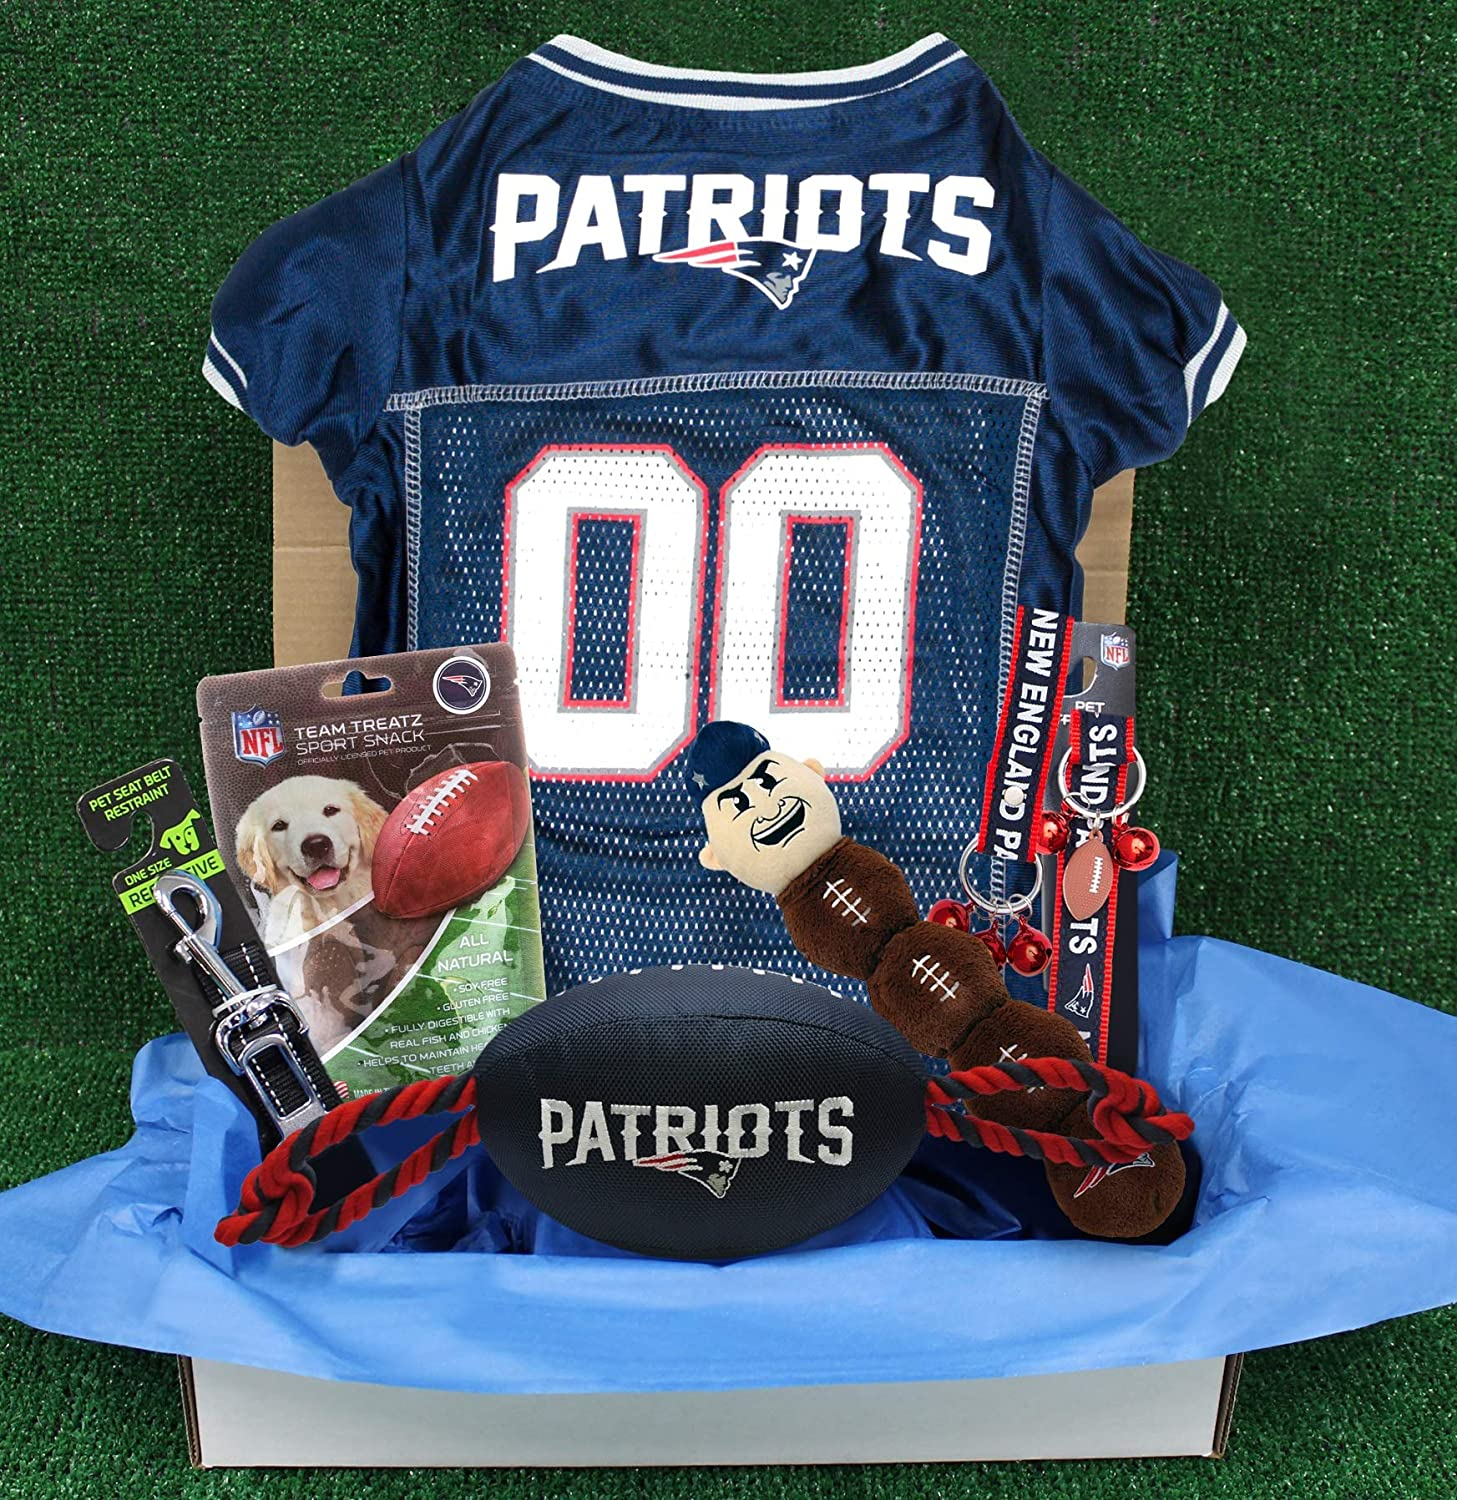 meet 64c4b aff48 NFL New England Patriots PET Gift Box with 2 Licensed Dog ...